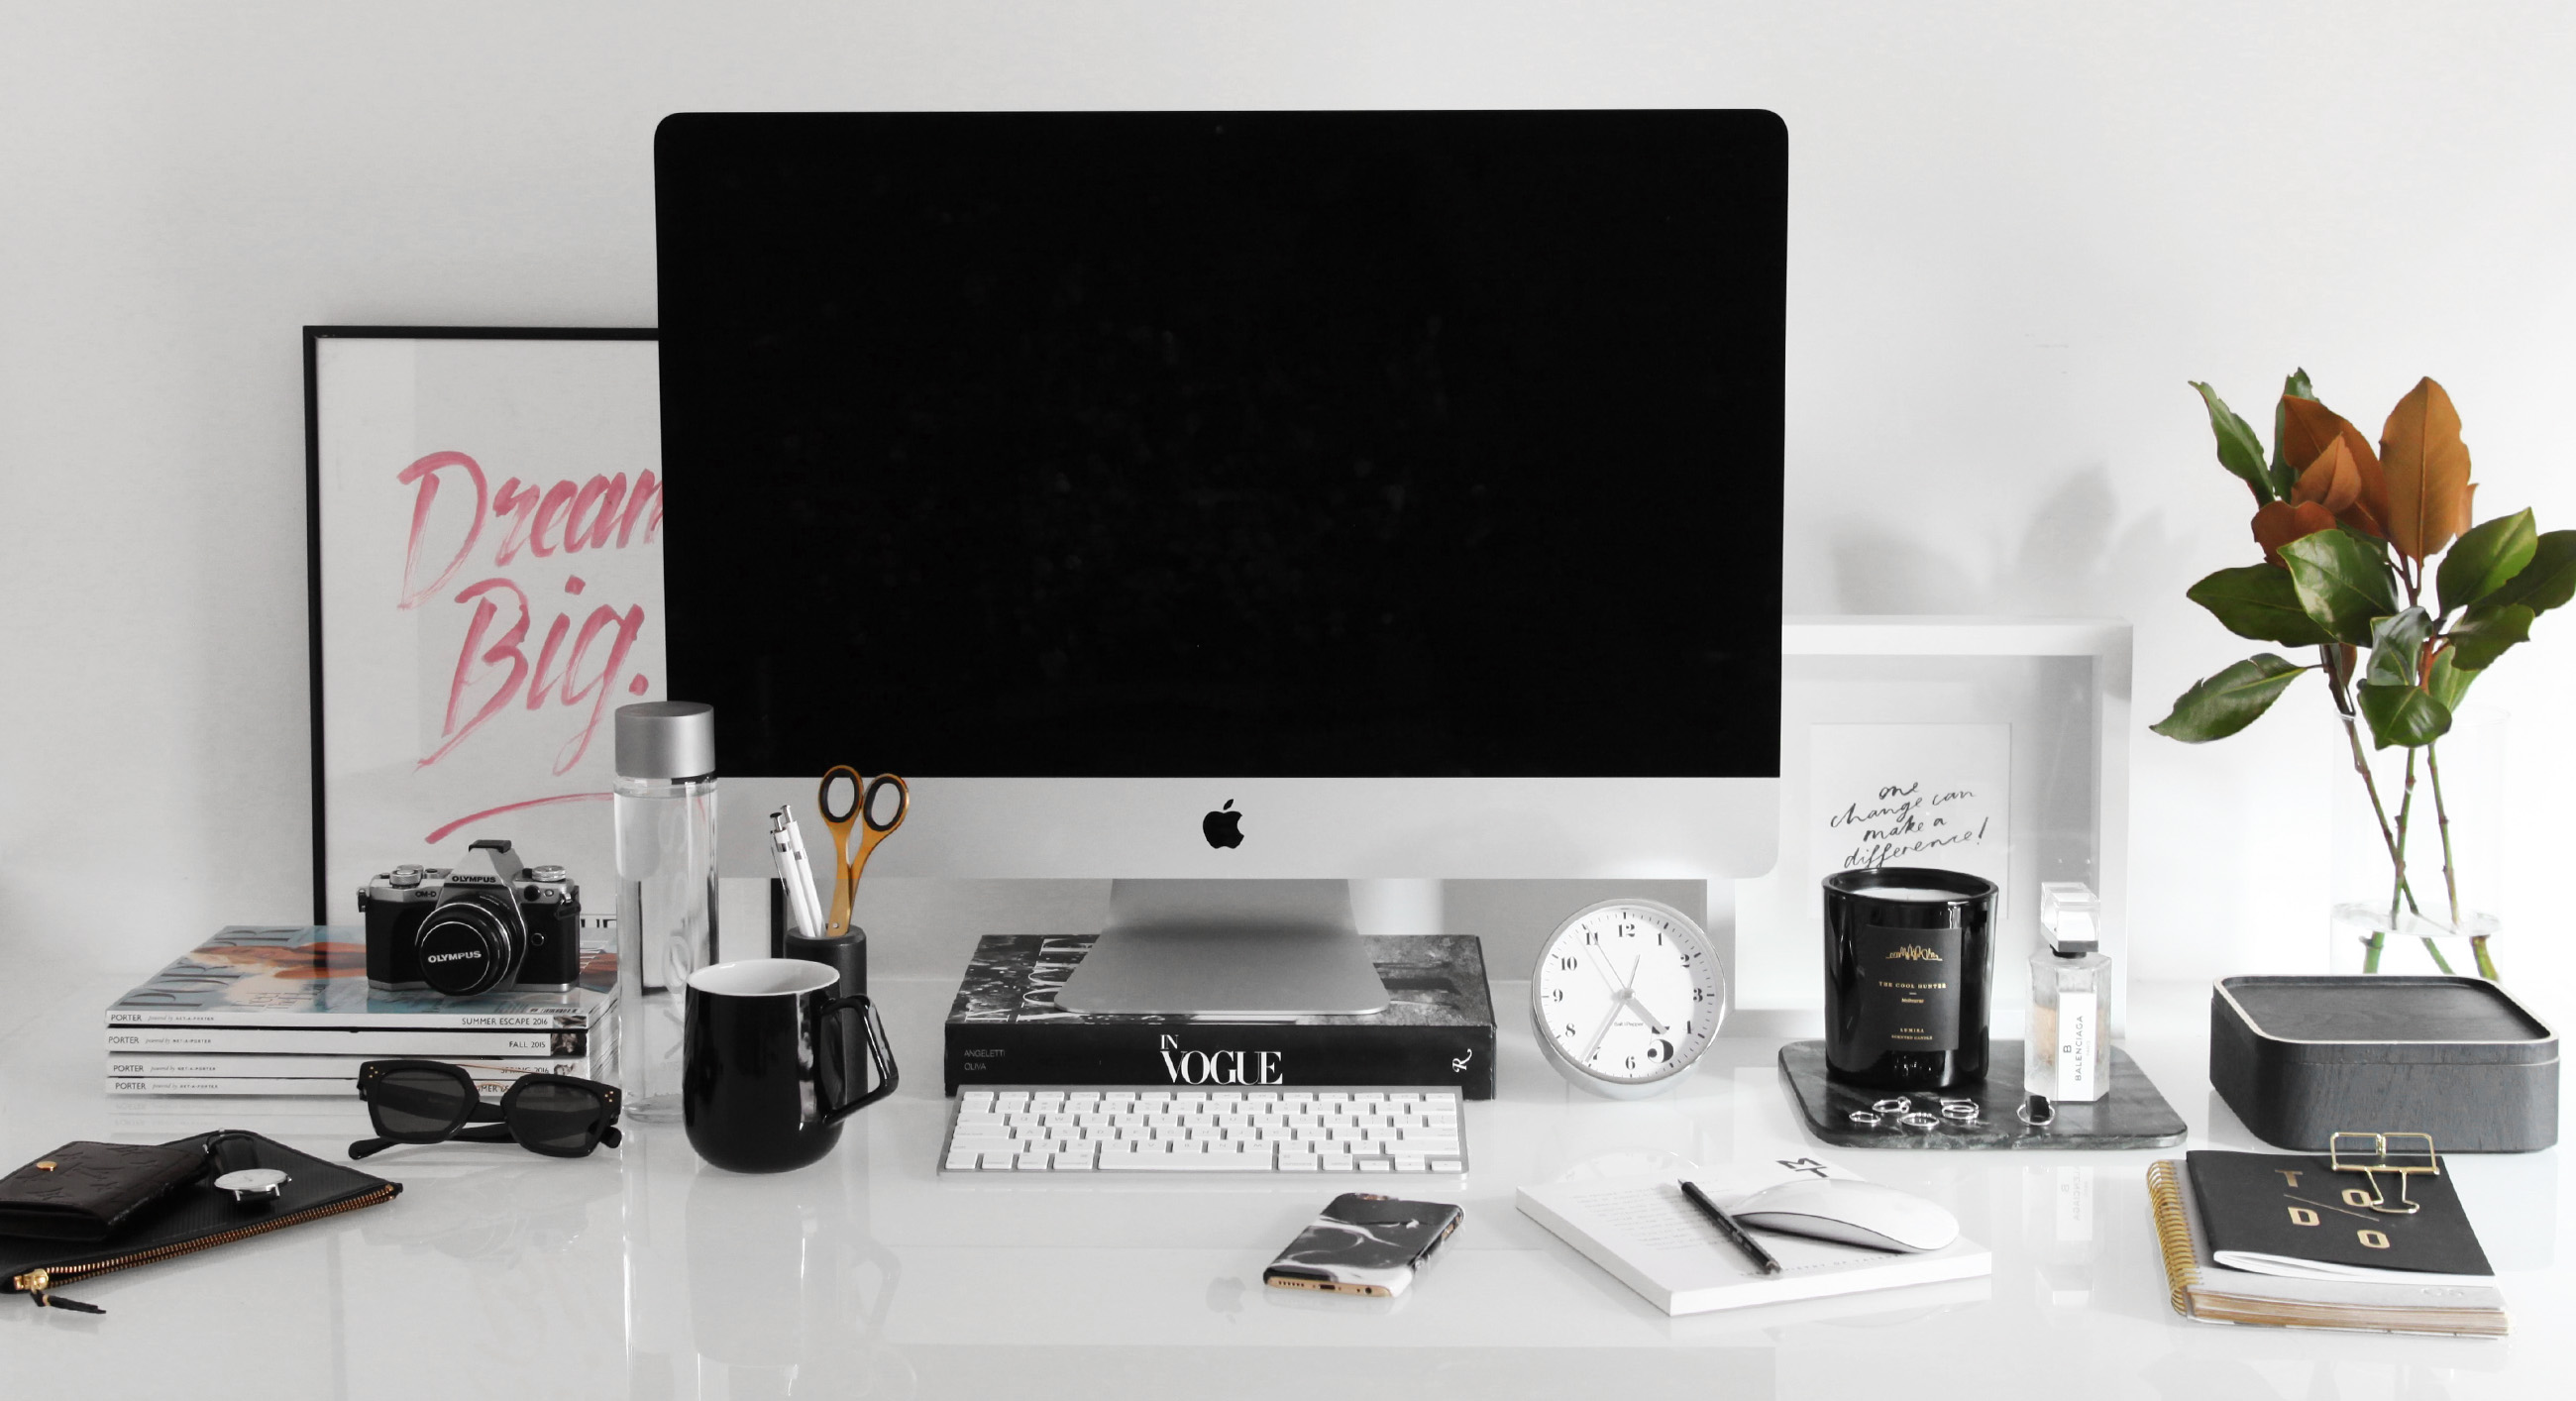 organise your workspace - design by aikonik 2